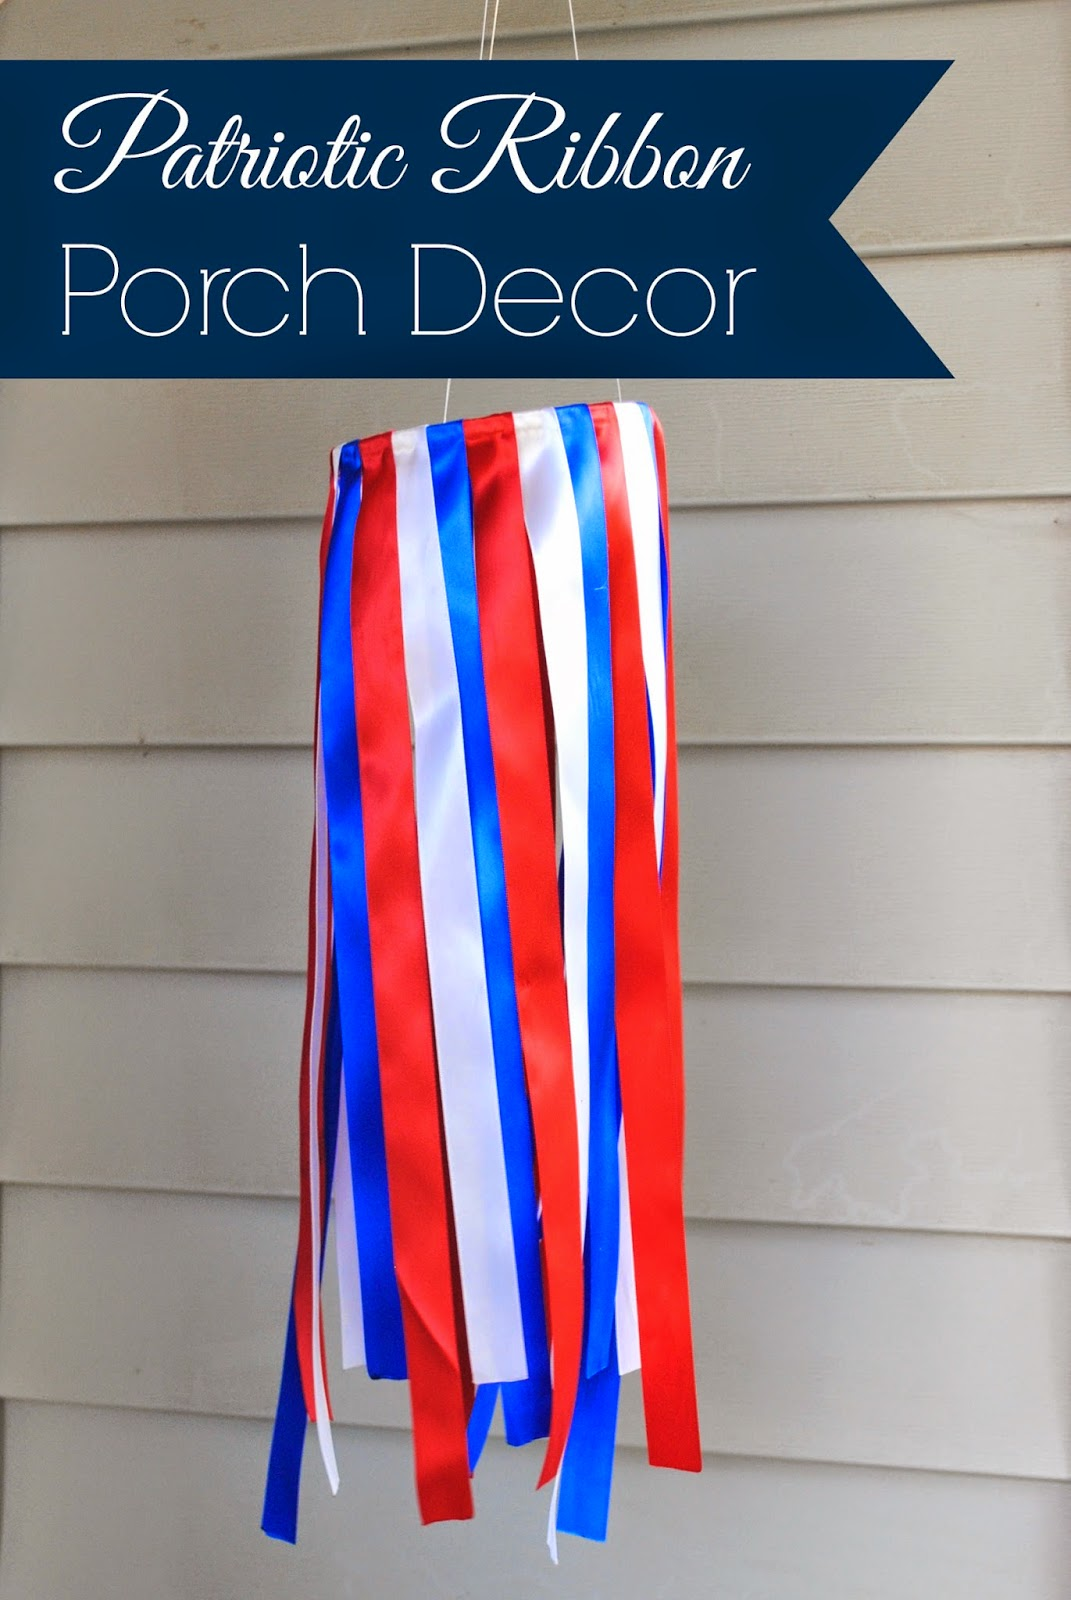 Patriotic Ribbon Porch Decor